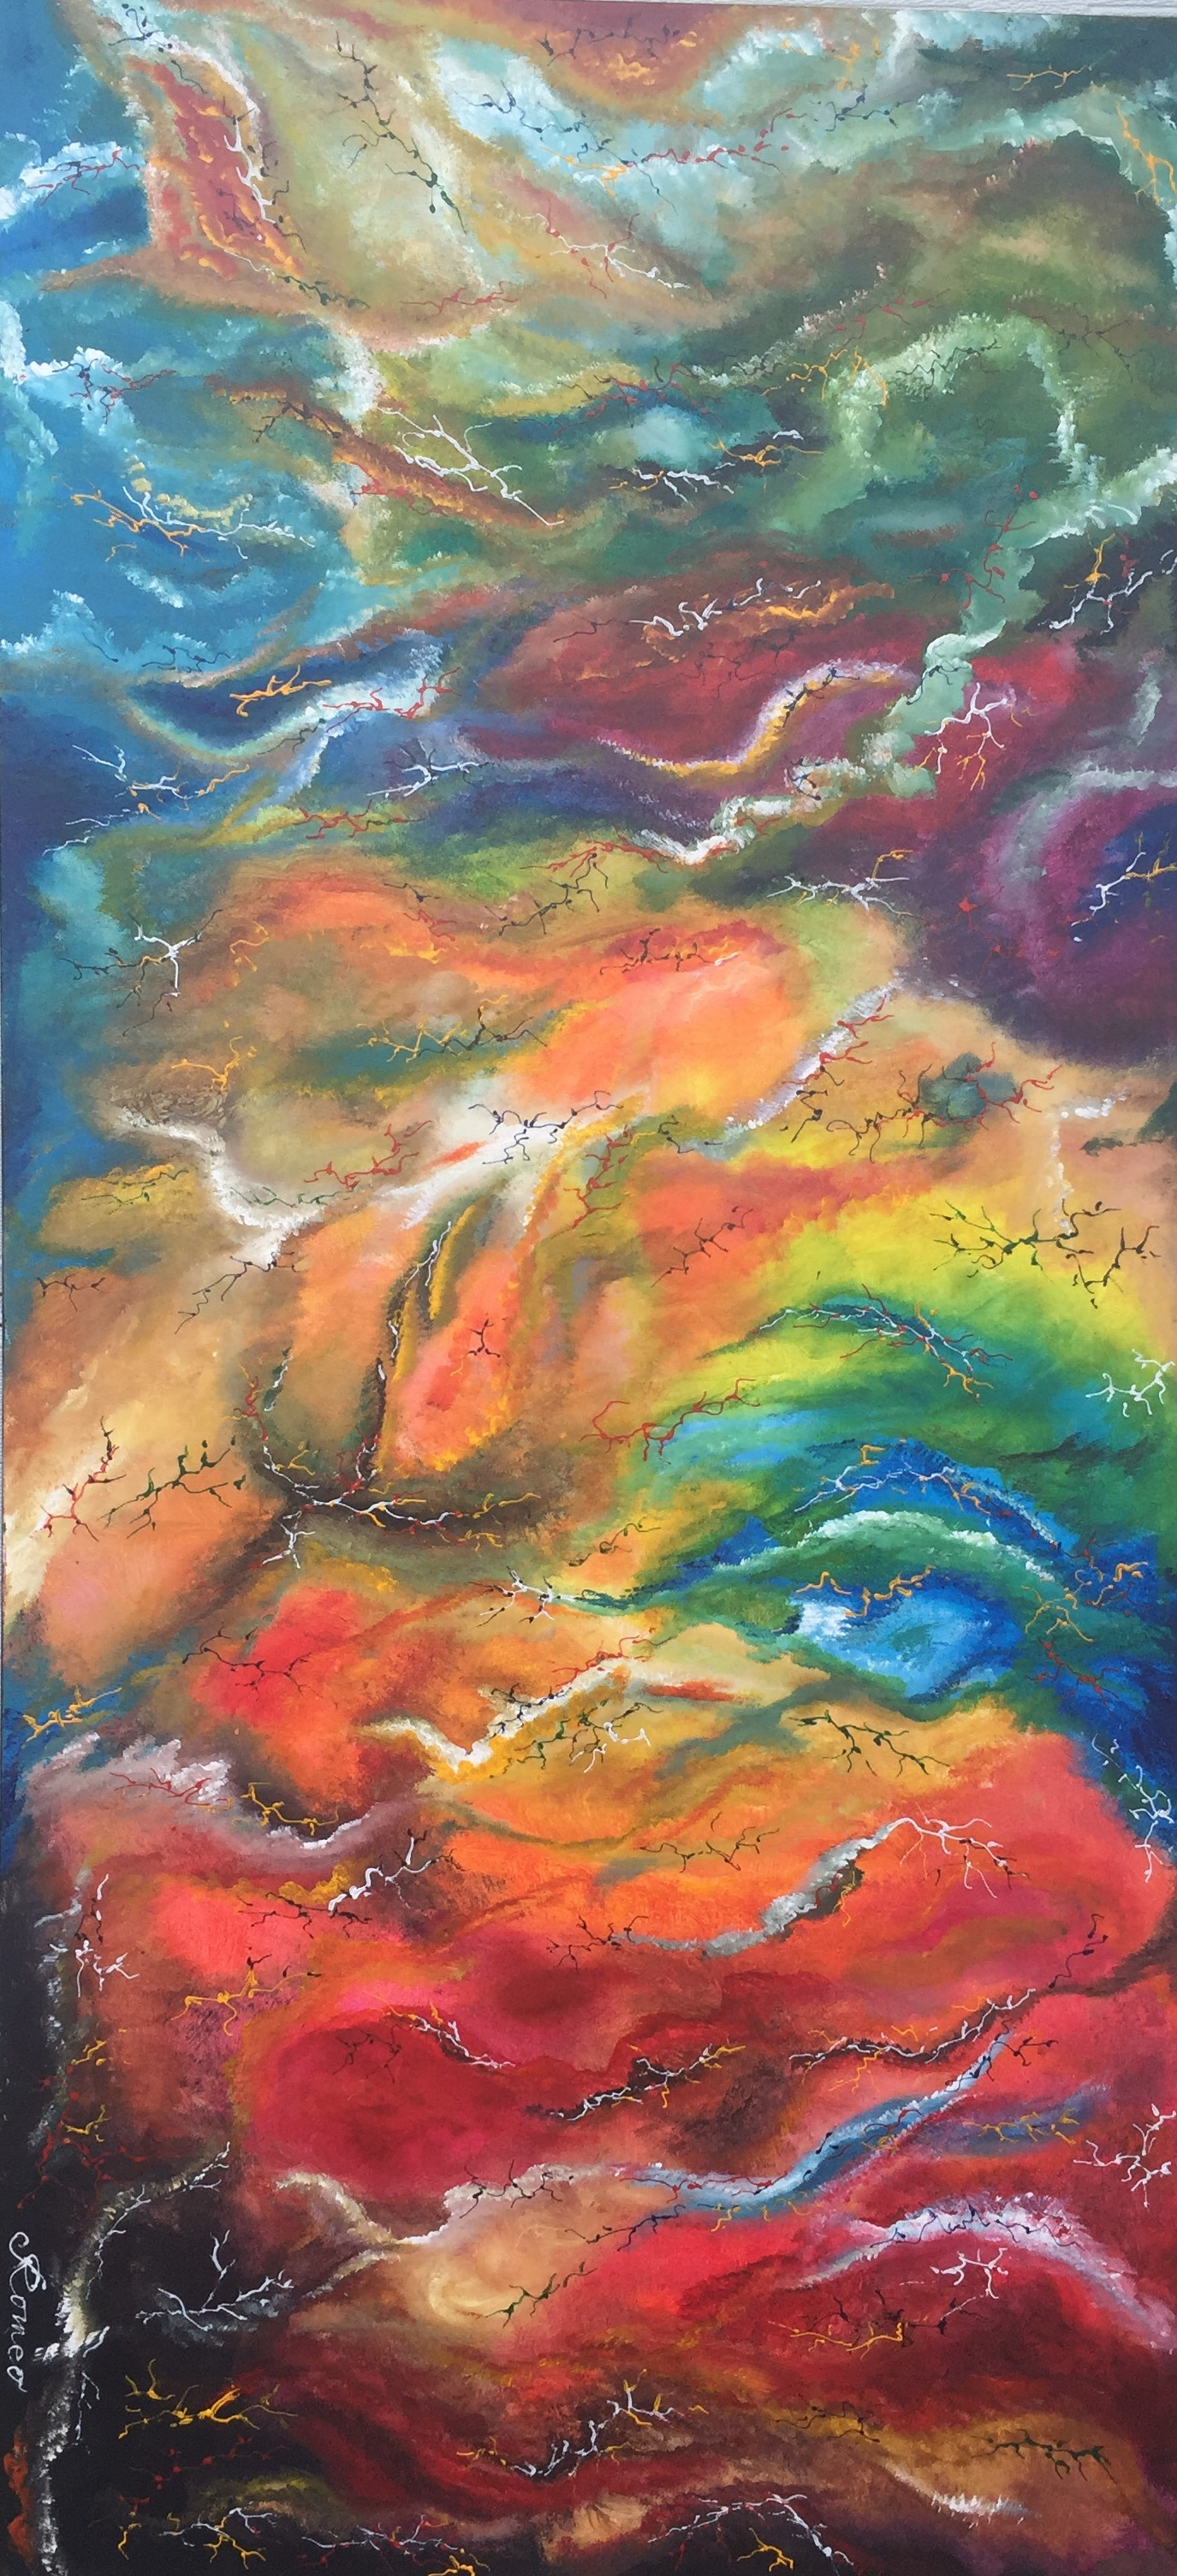 Colours, inside of marble. acrylic on canvas, 30x64x1.5 inches, SKU 1043